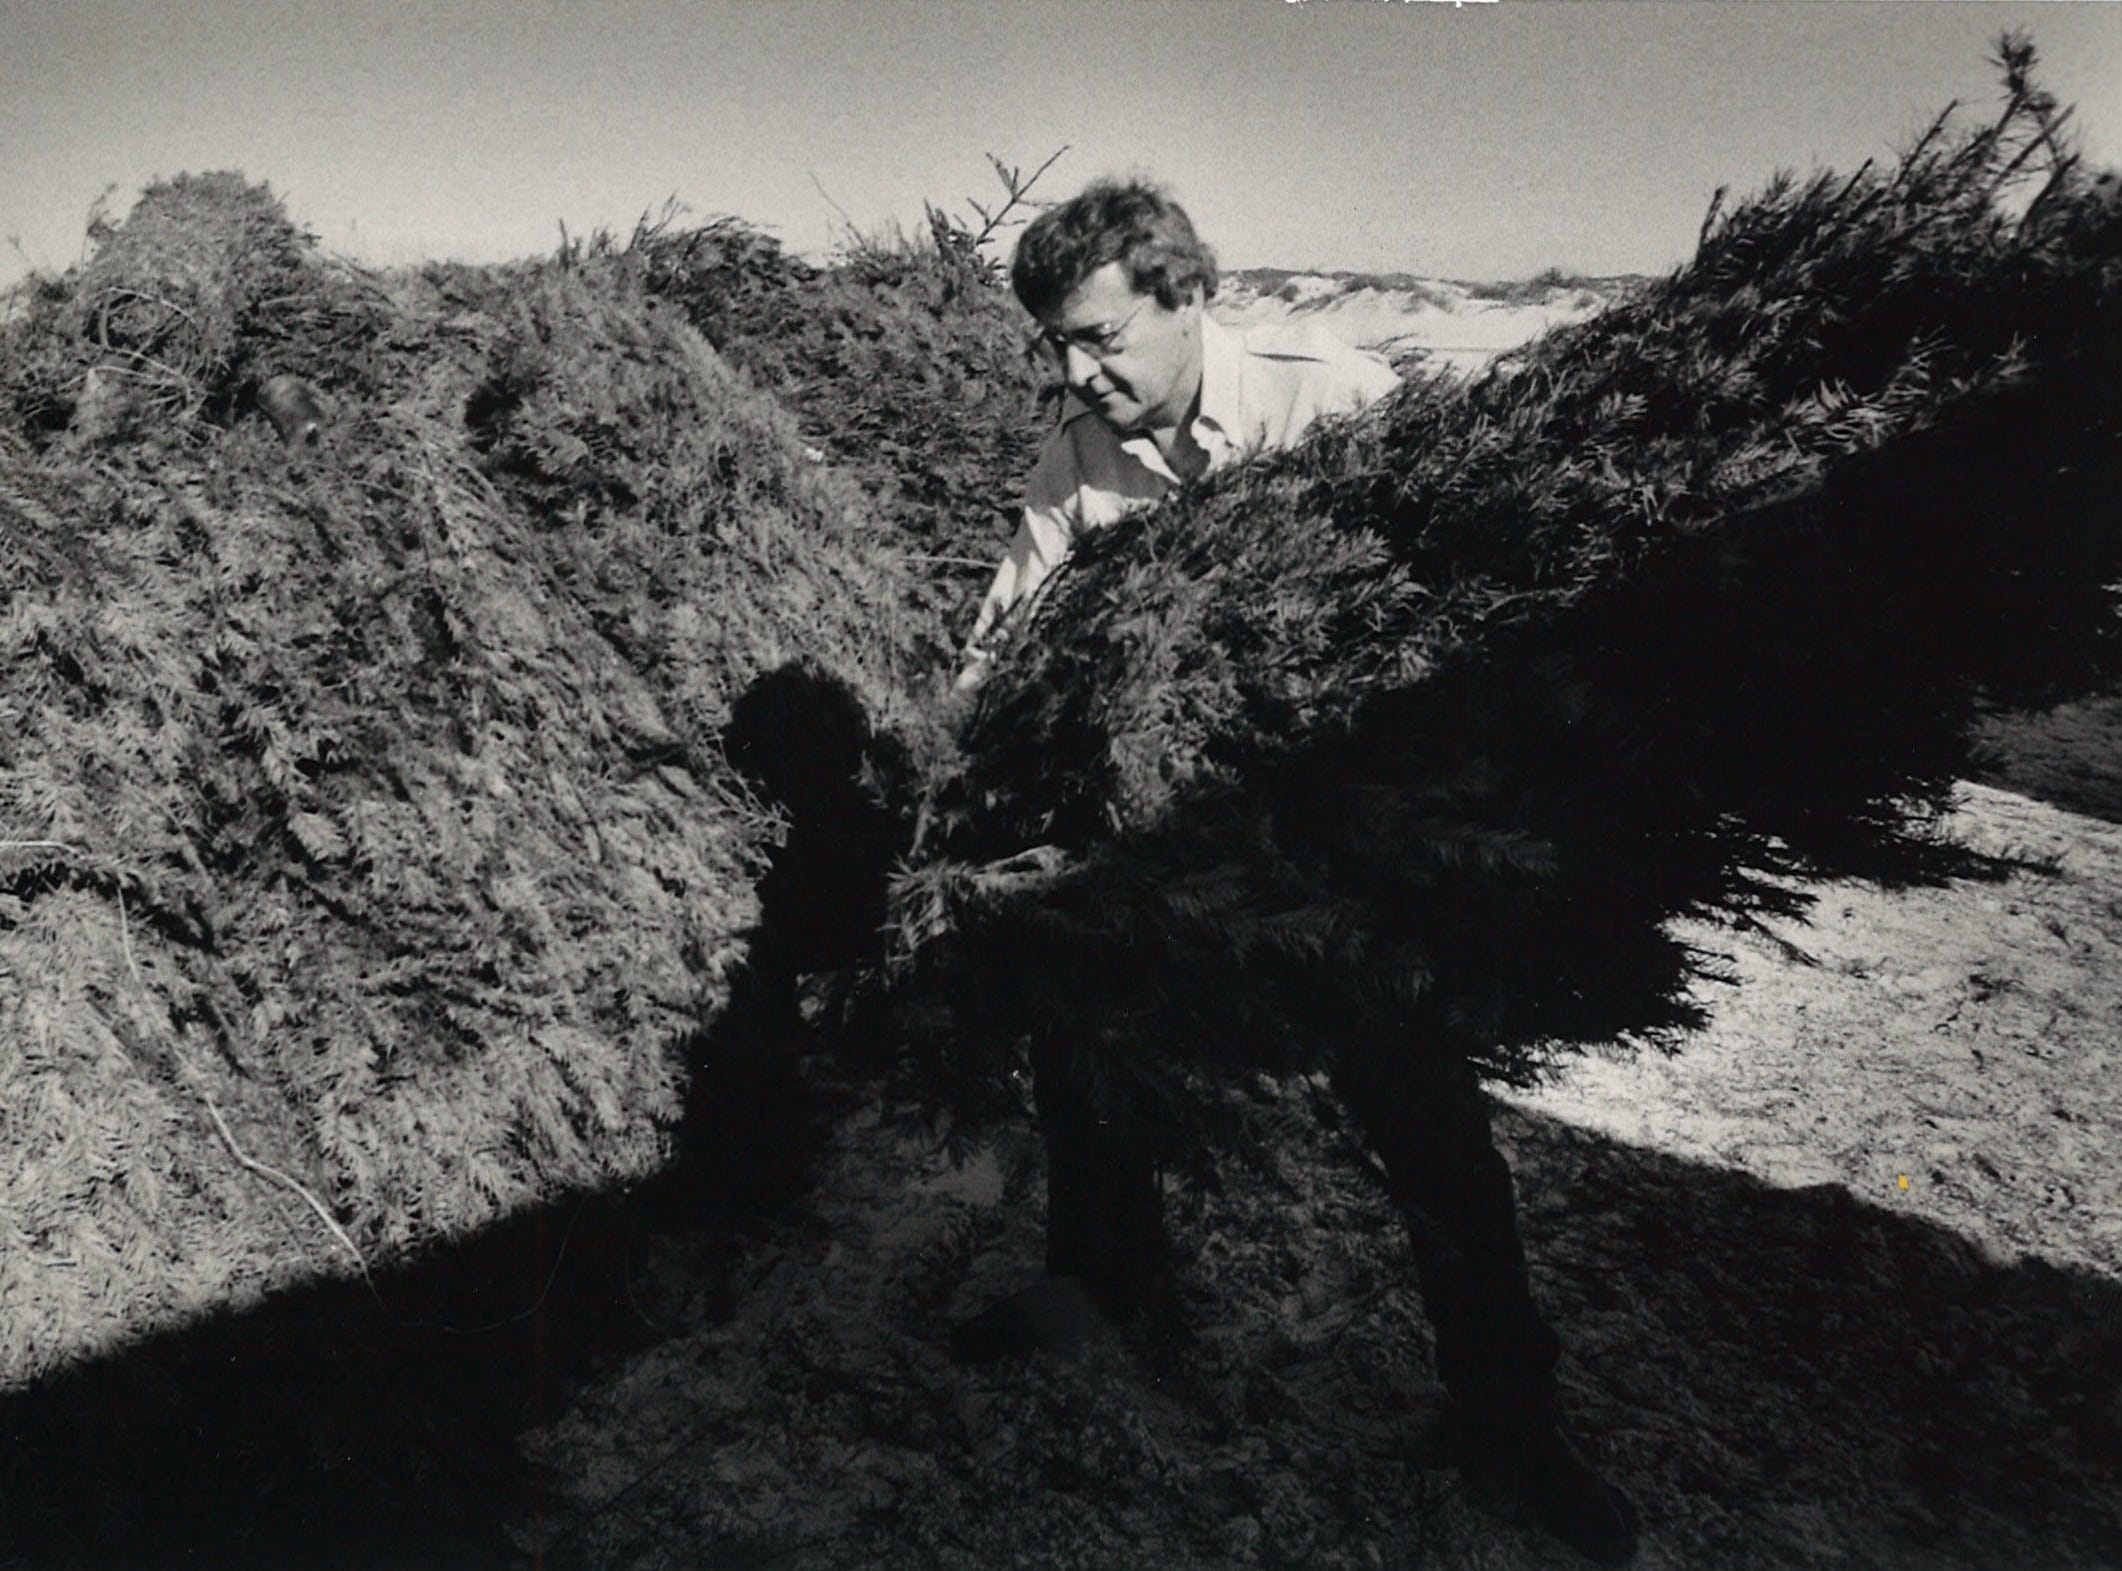 Nueces County Precinct 4 Commissioner J.P. Luby moves a Christmas tree as part of beach dune restoration Dec. 27, 1985.